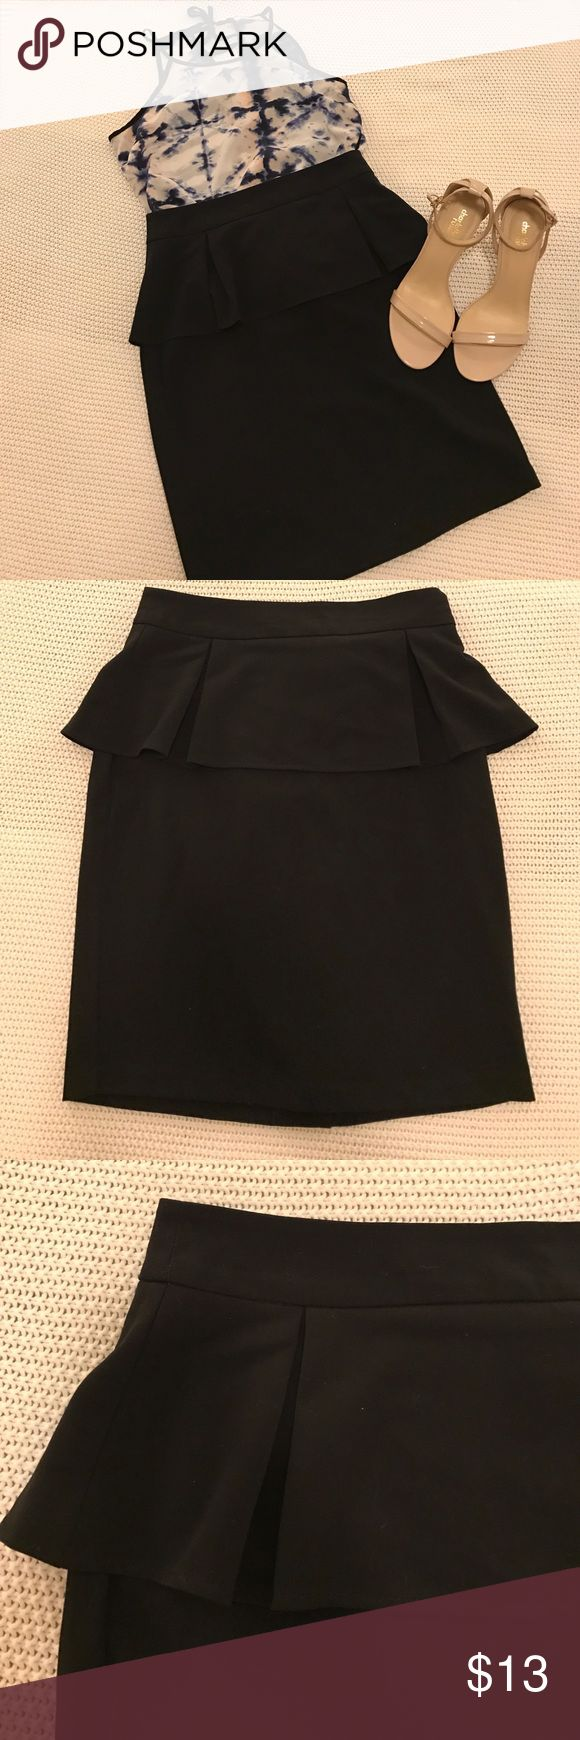 Forever 21 Black Peplum Skirt NWT. Size S. Perfect for work with a pair of heels. Forever 21 Skirts